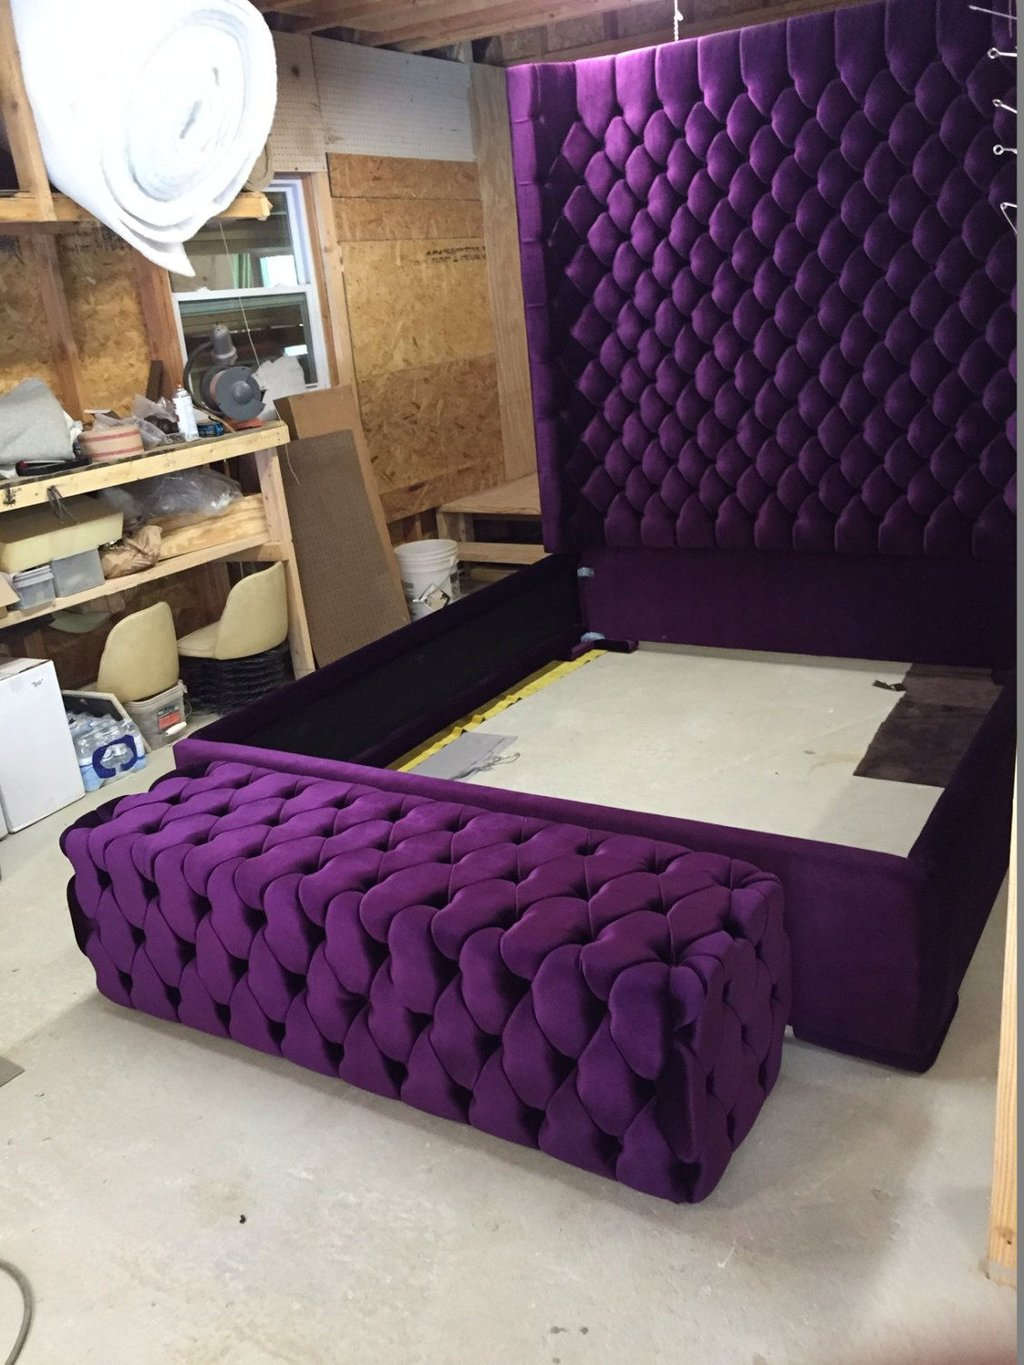 31 Outstanding Tufted Headboard Idea Bedroom How To Build A Tufted Headboard